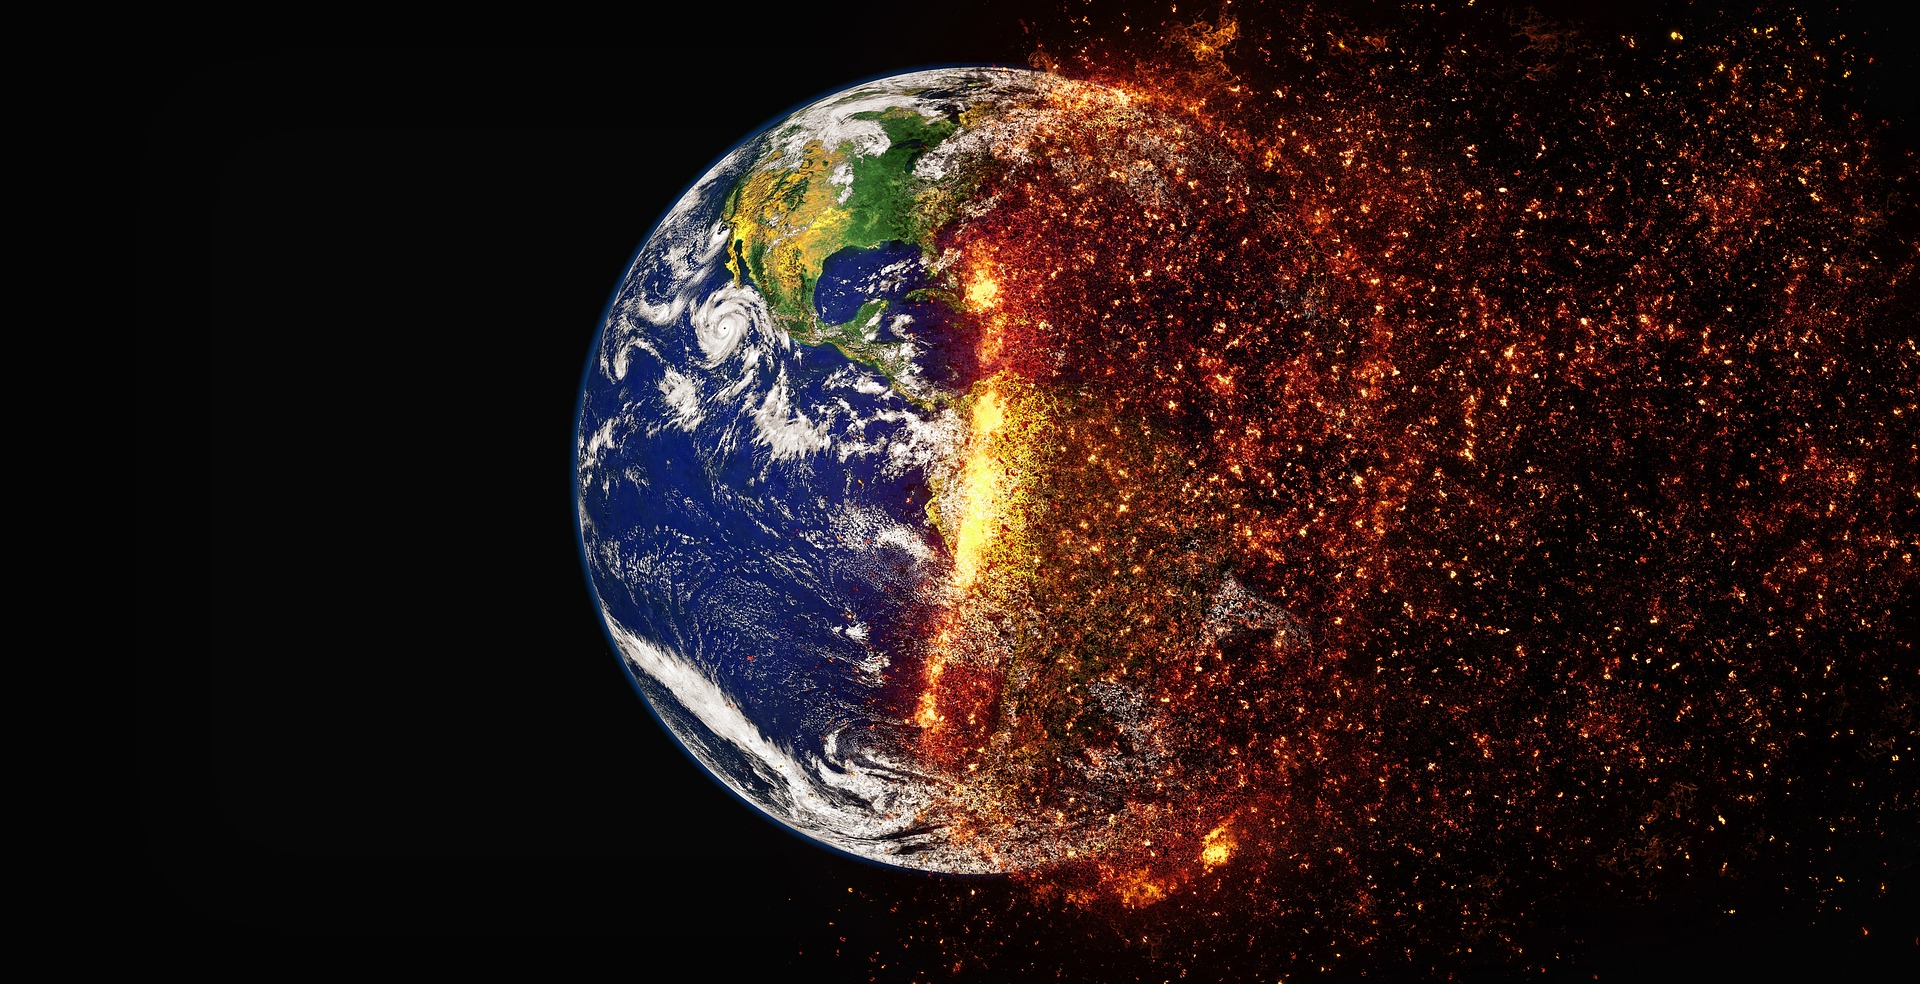 planet earth burning due to climate change